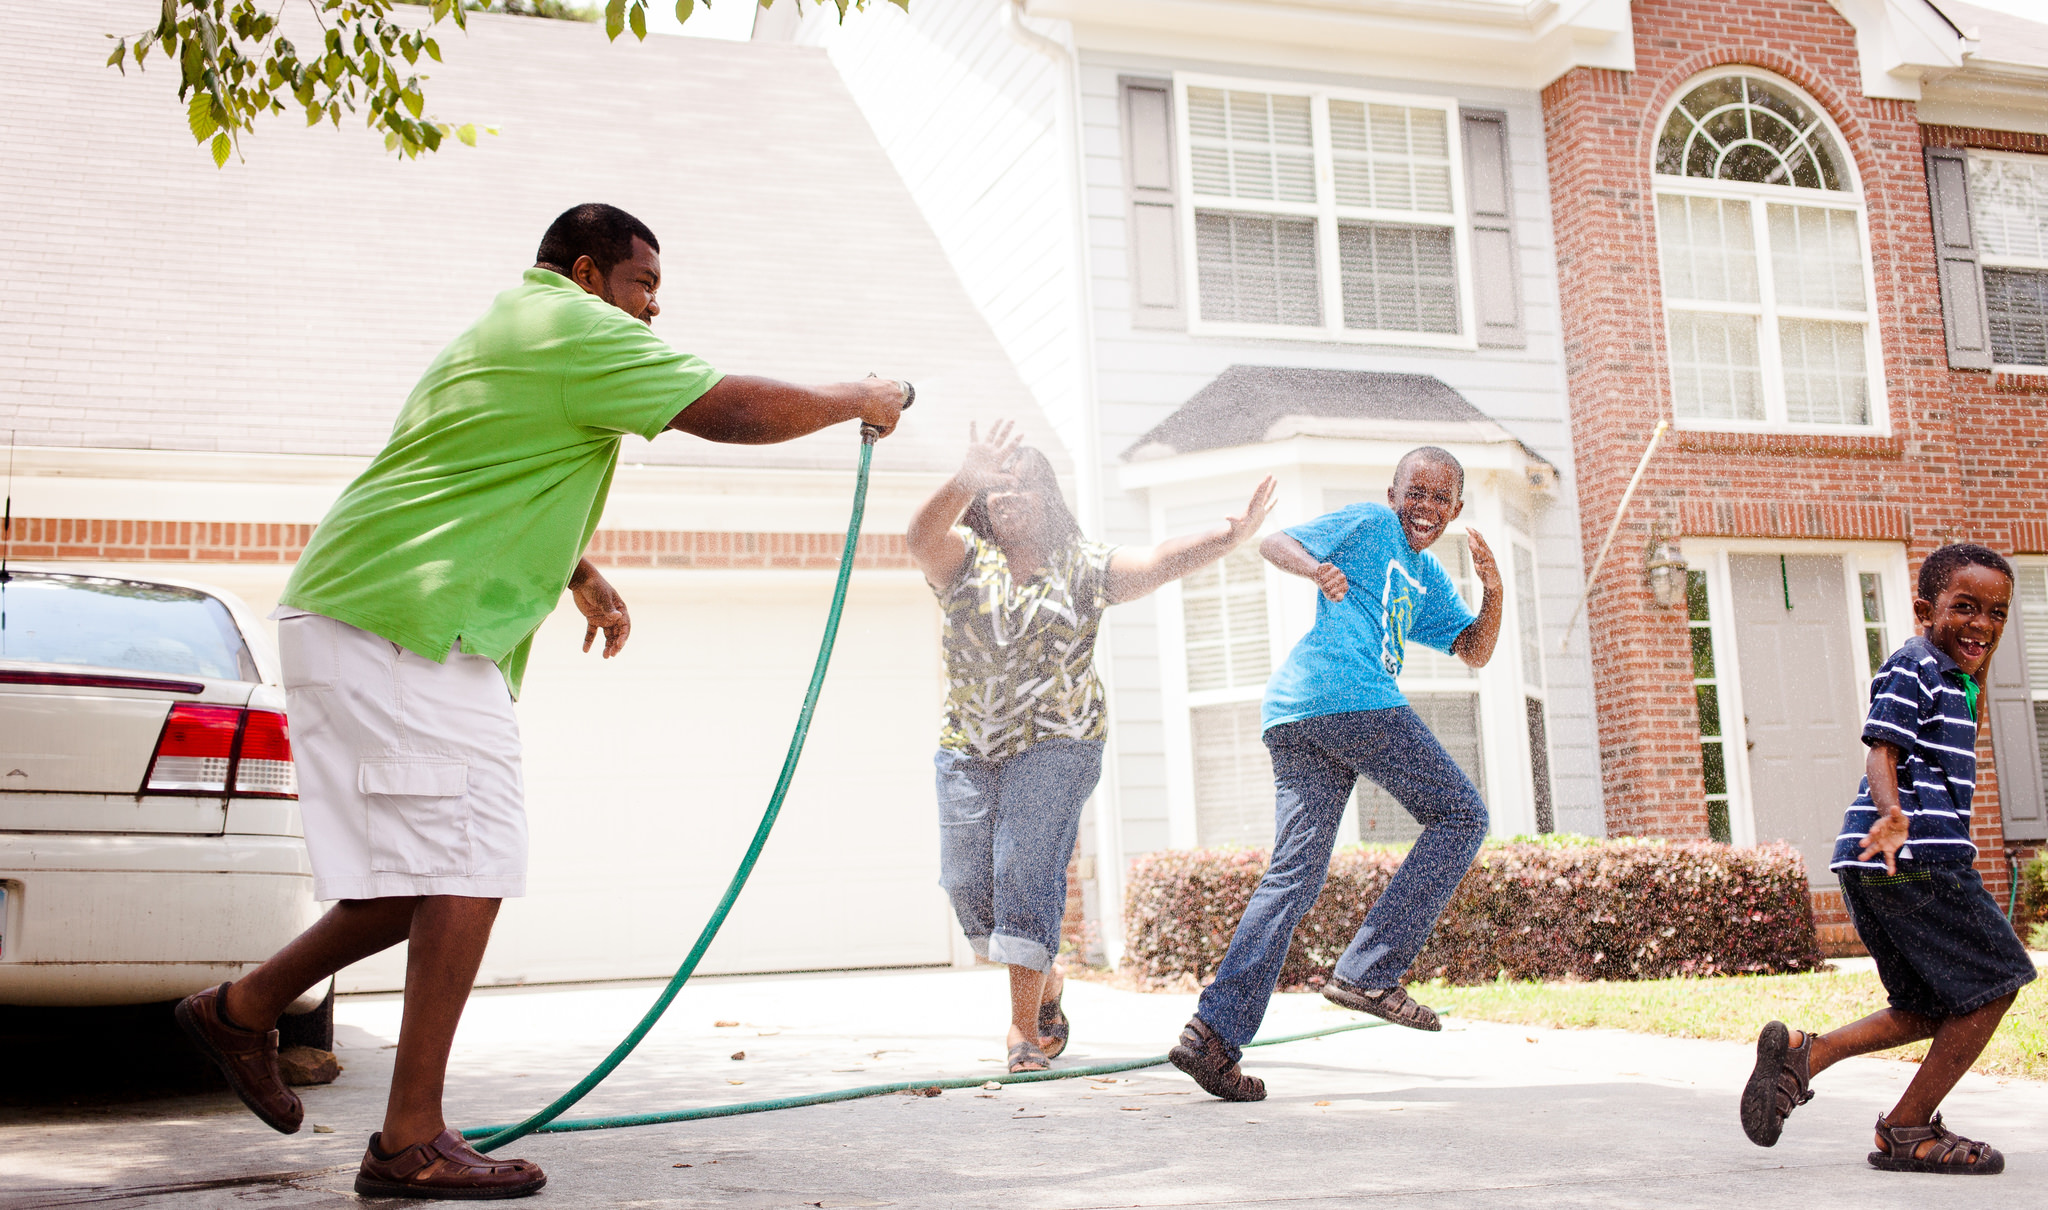 Father plays with his boys using a hose.